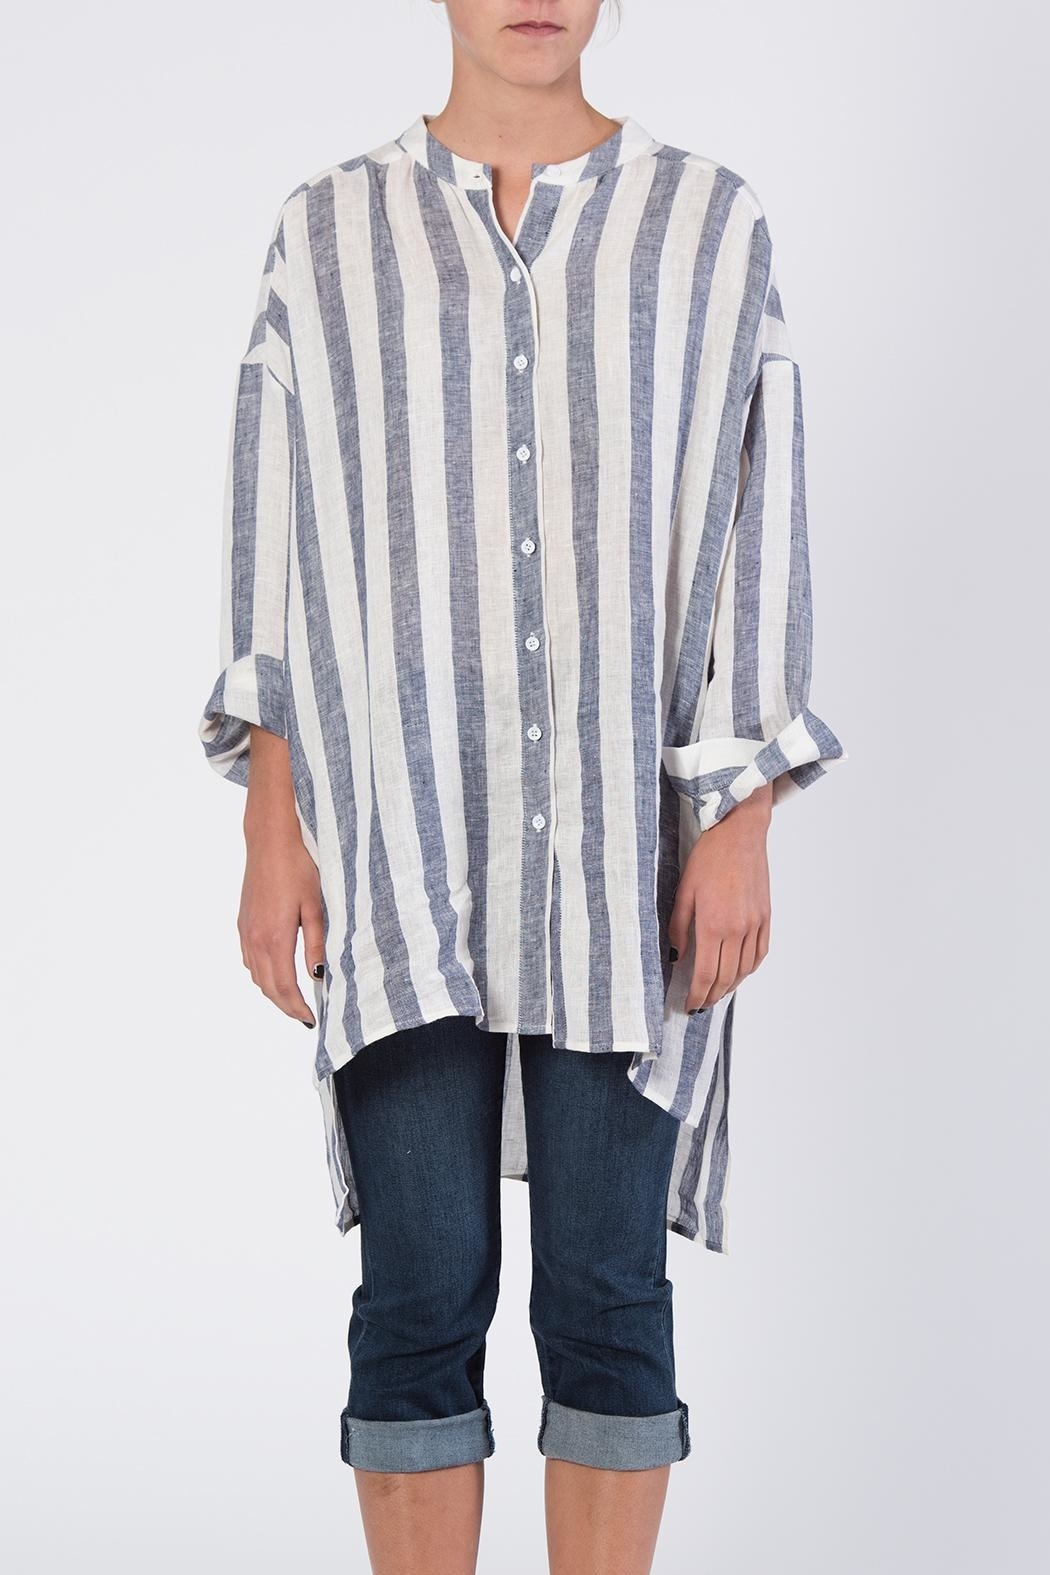 BEULAH STYLE Blue & White Striped Top - Front Full Image